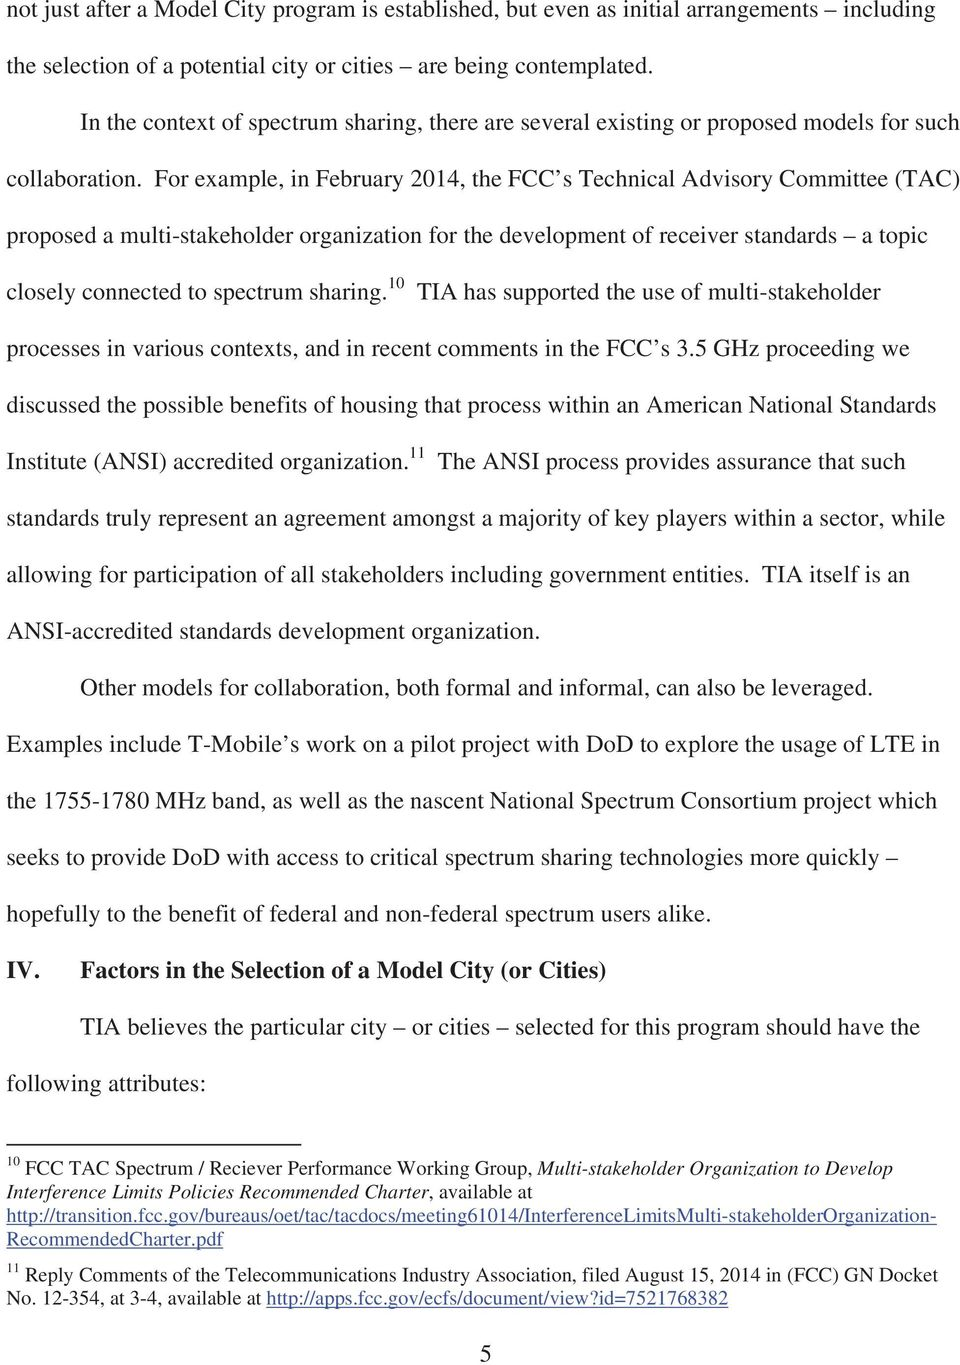 For example, in February 2014, the FCC s Technical Advisory Committee (TAC proposed a multi-stakeholder organization for the development of receiver standards a topic closely connected to spectrum